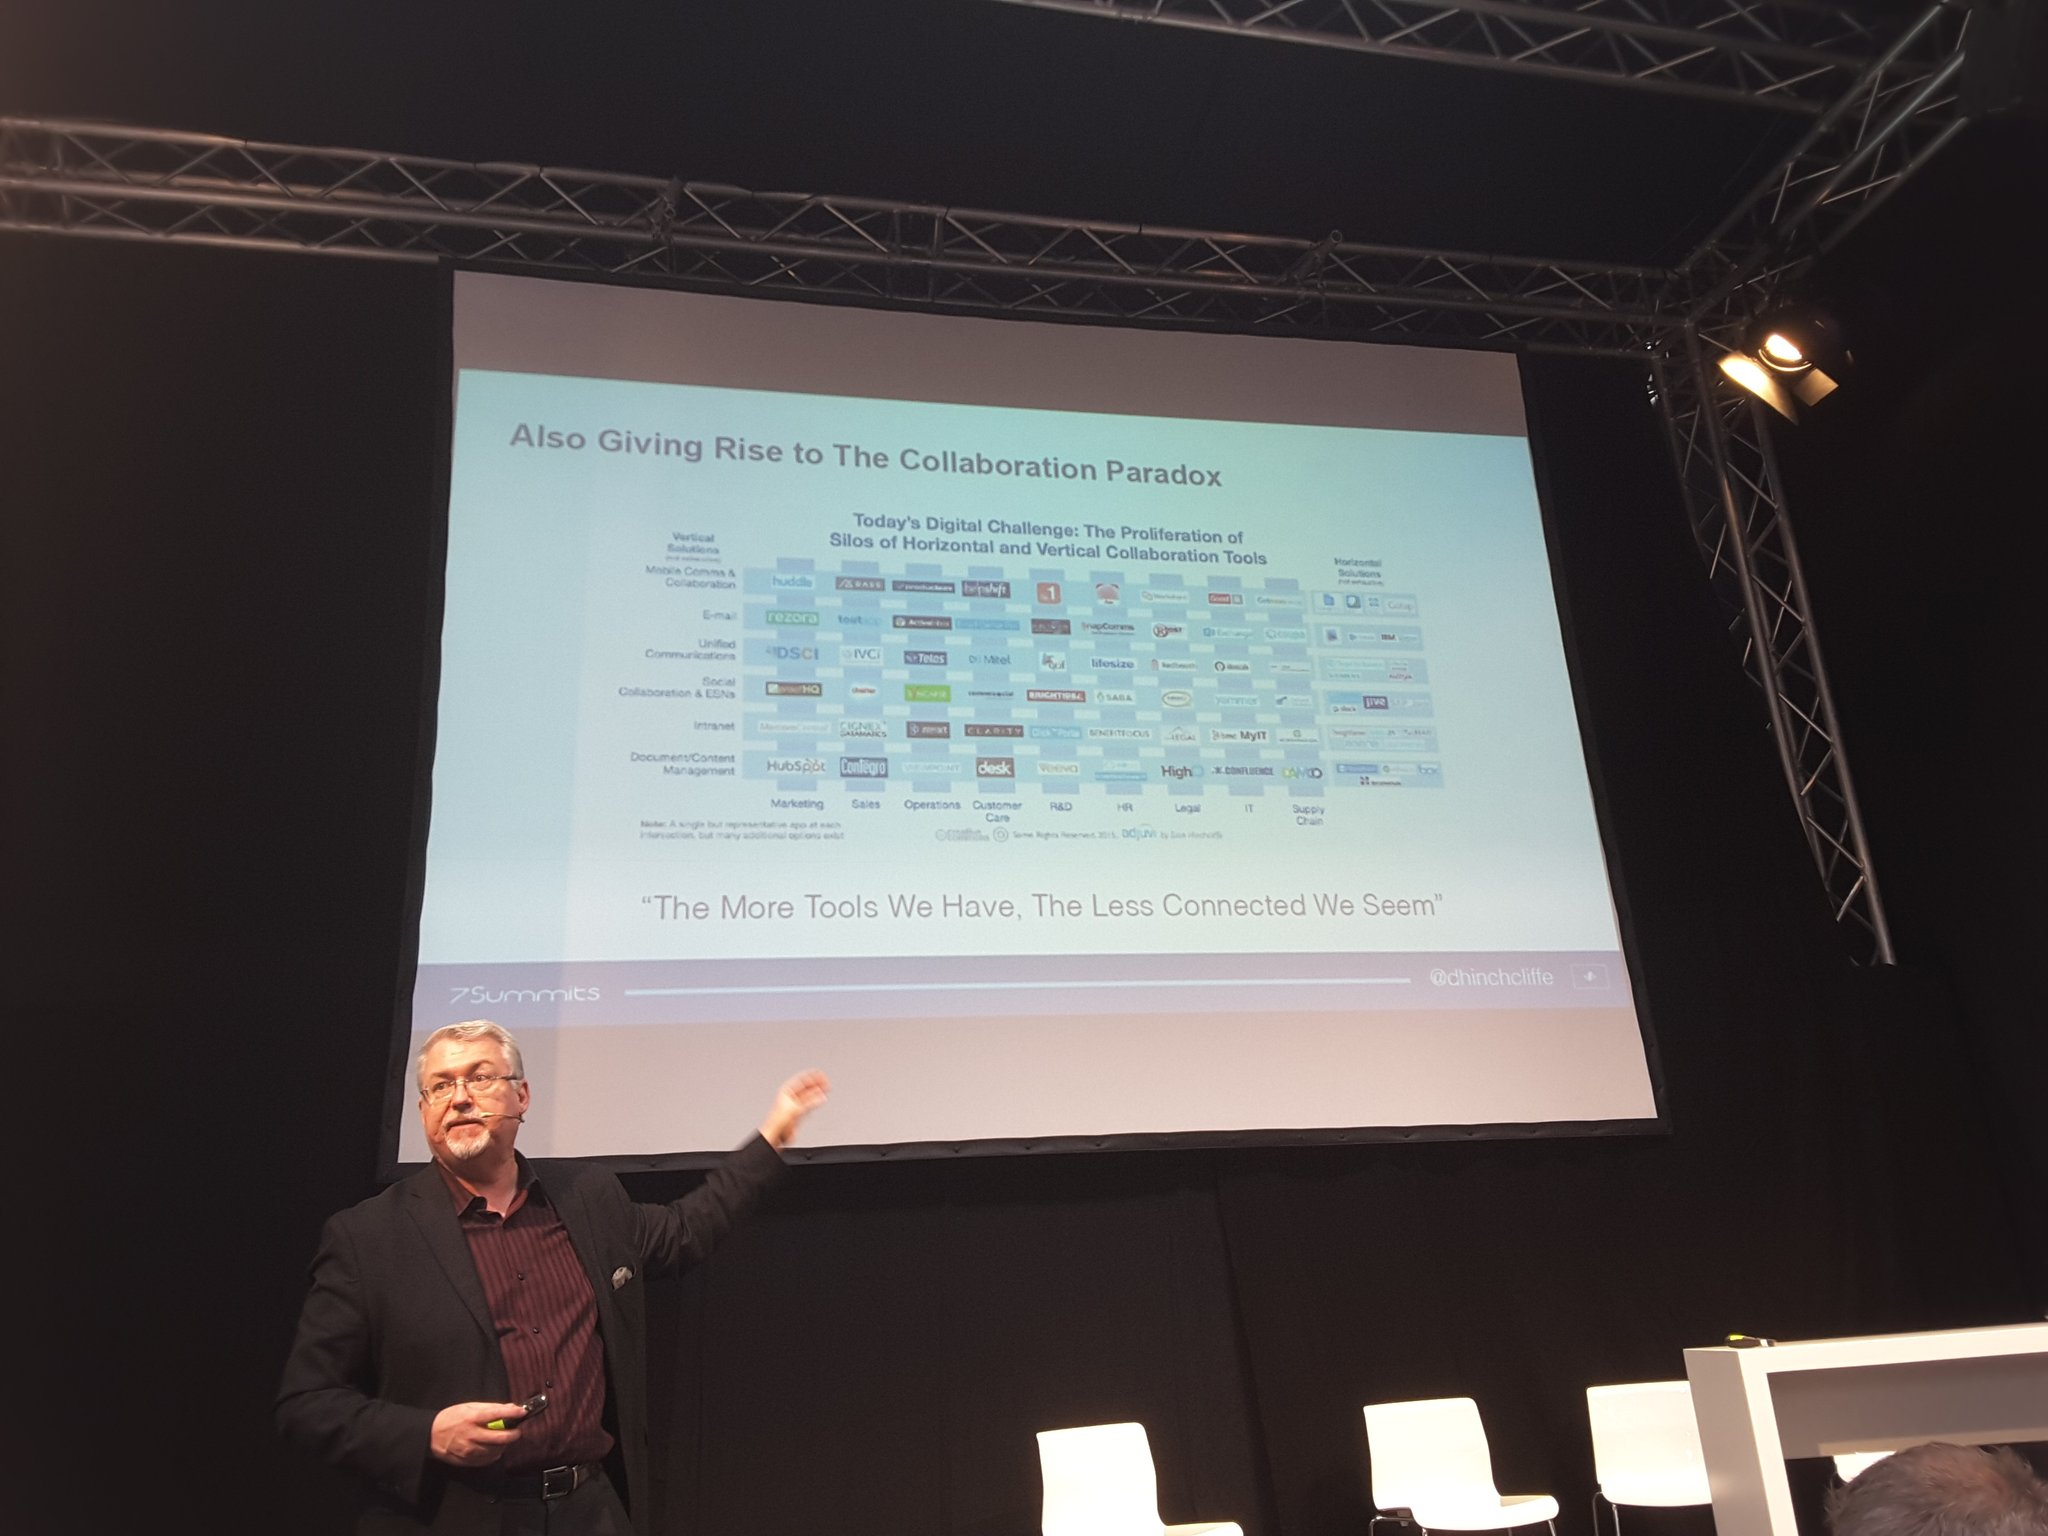 "@dhinchcliffe The Collaboration Paradox: ""The more tools we have the less connected we seem"" - the hub model might help... #cebiteda https://t.co/skaAxQWJP2"